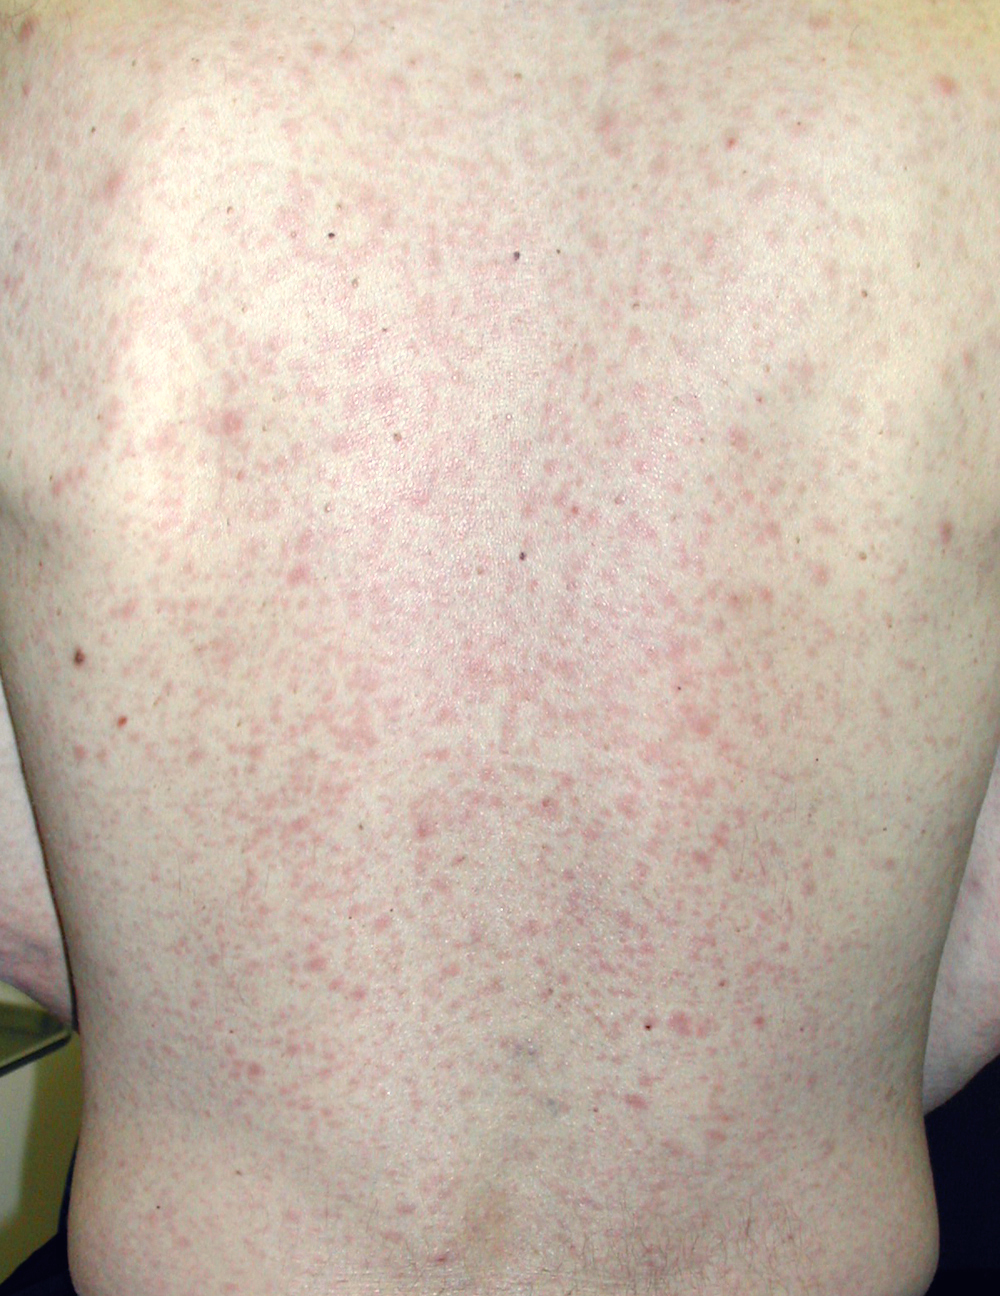 This patient with secondary syphilis developed a diffuse erythematous macular rash prominent on the chest and back.<div>Photograph credit: David H. Spach, MD</div>